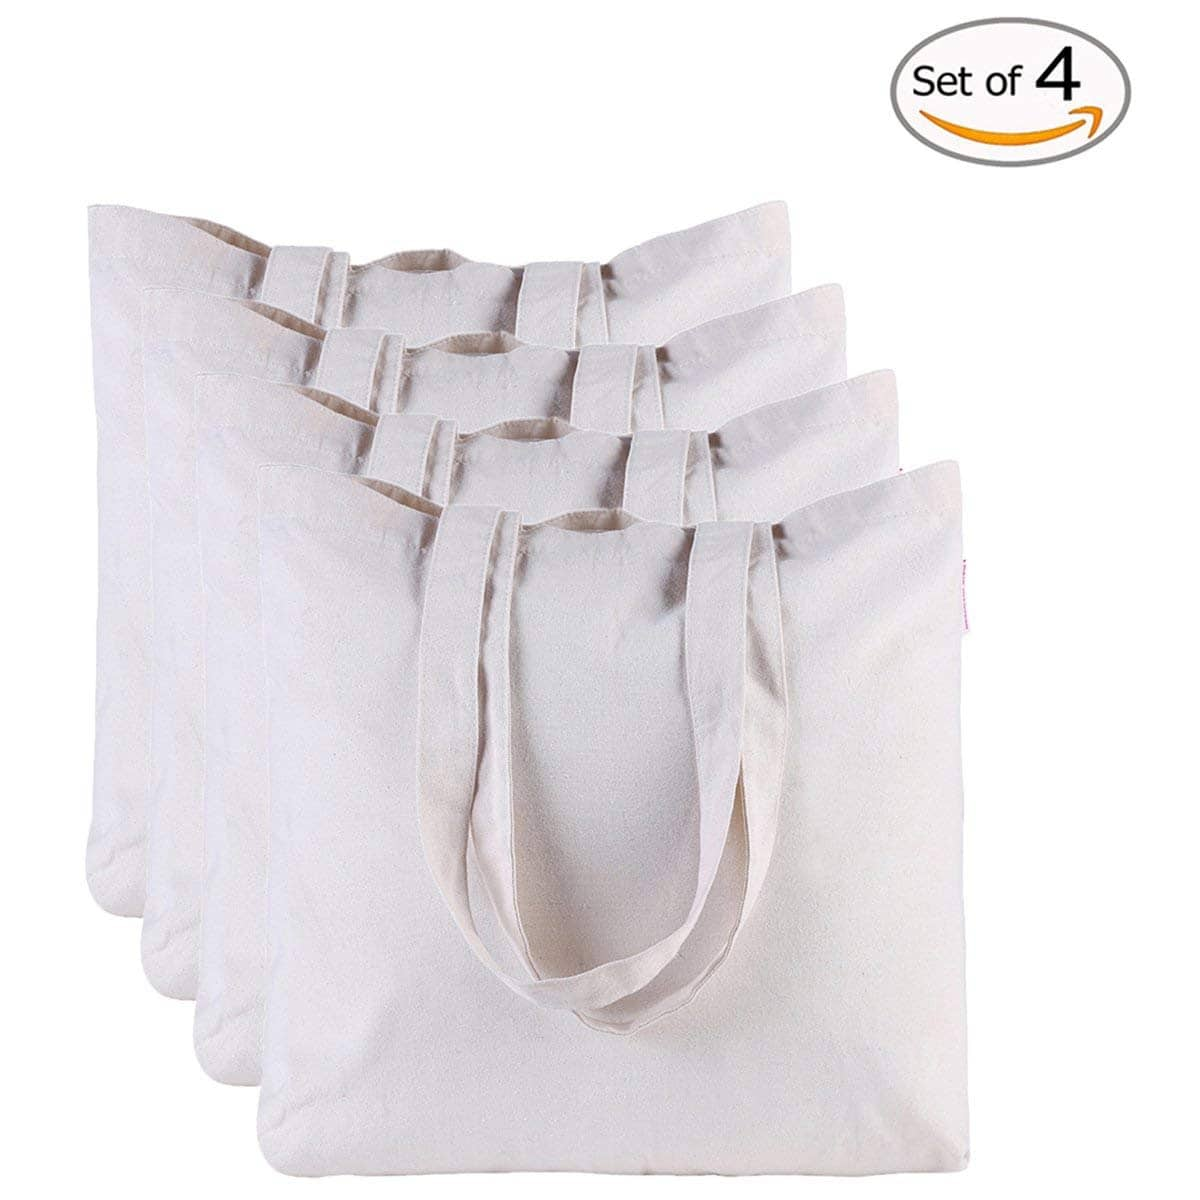 Canvas Bag by Dimayar 4pcs Washable Canvas Shopping Bag Resuable Grocery Bags Cloth Shopping White Bags Canvas Tote Bag Perfect for Crafting Decorating for $6.8